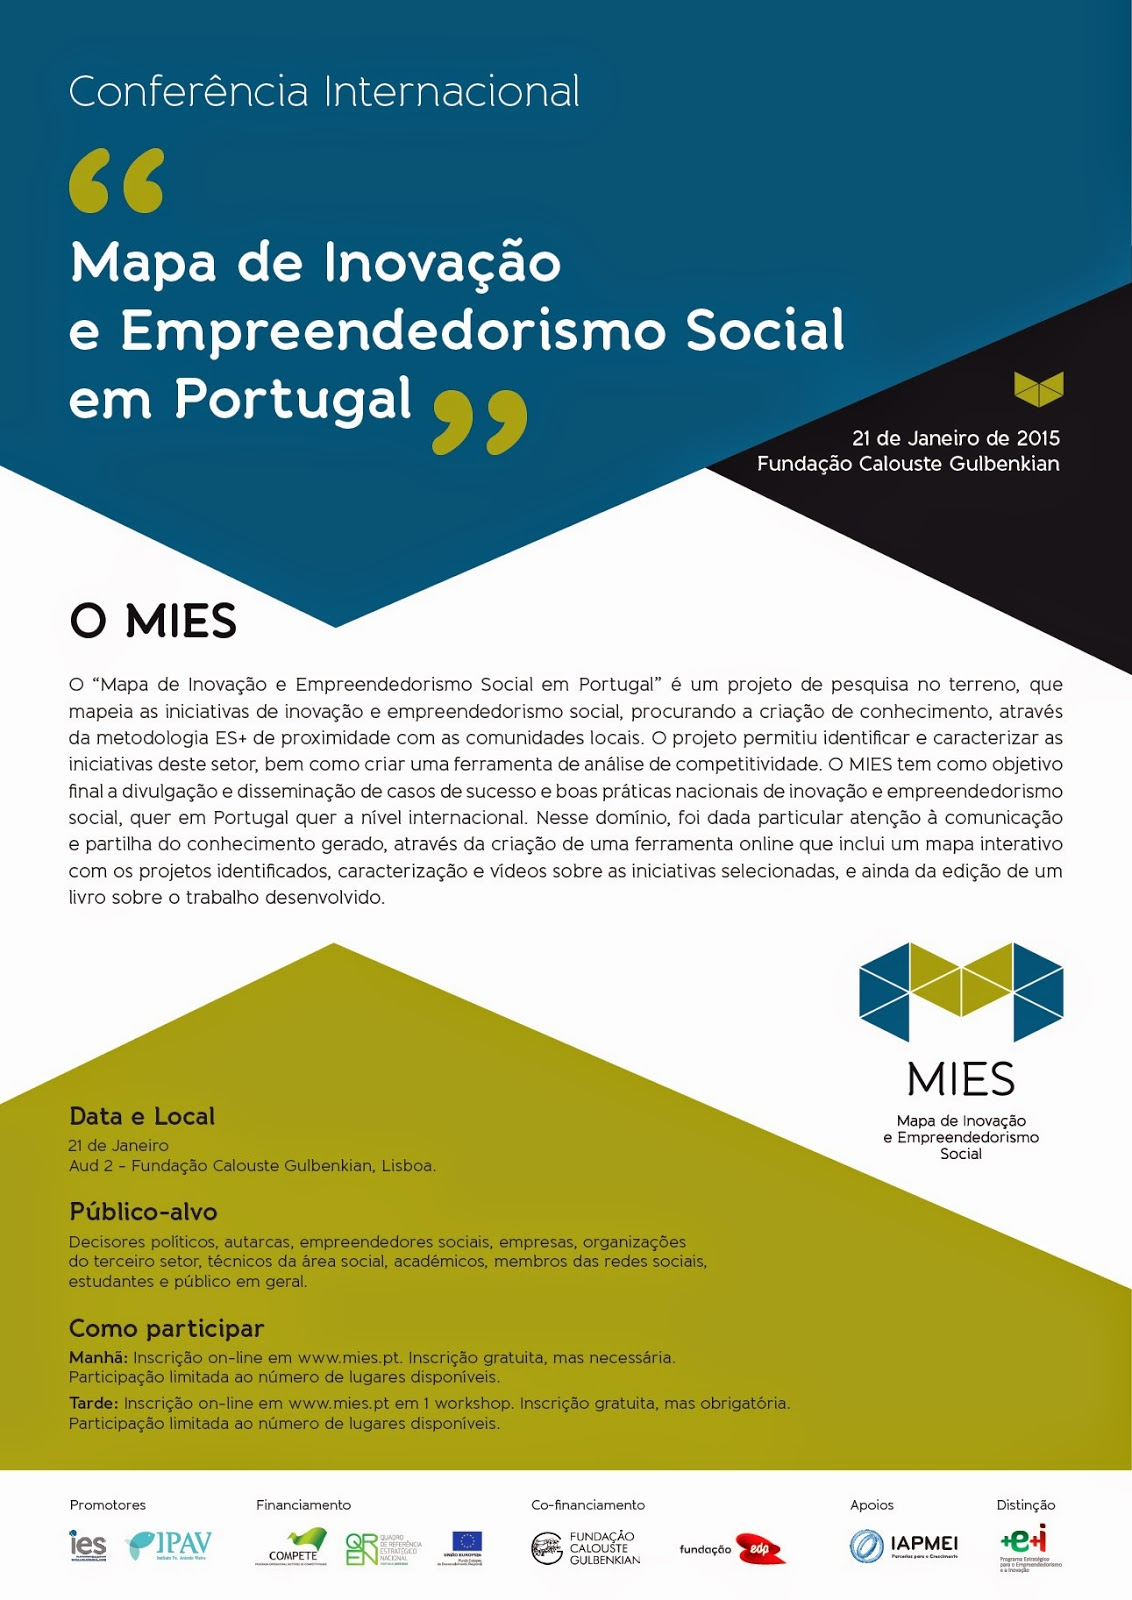 http://www.mies.pt/index.php/pt/inscricao-mies